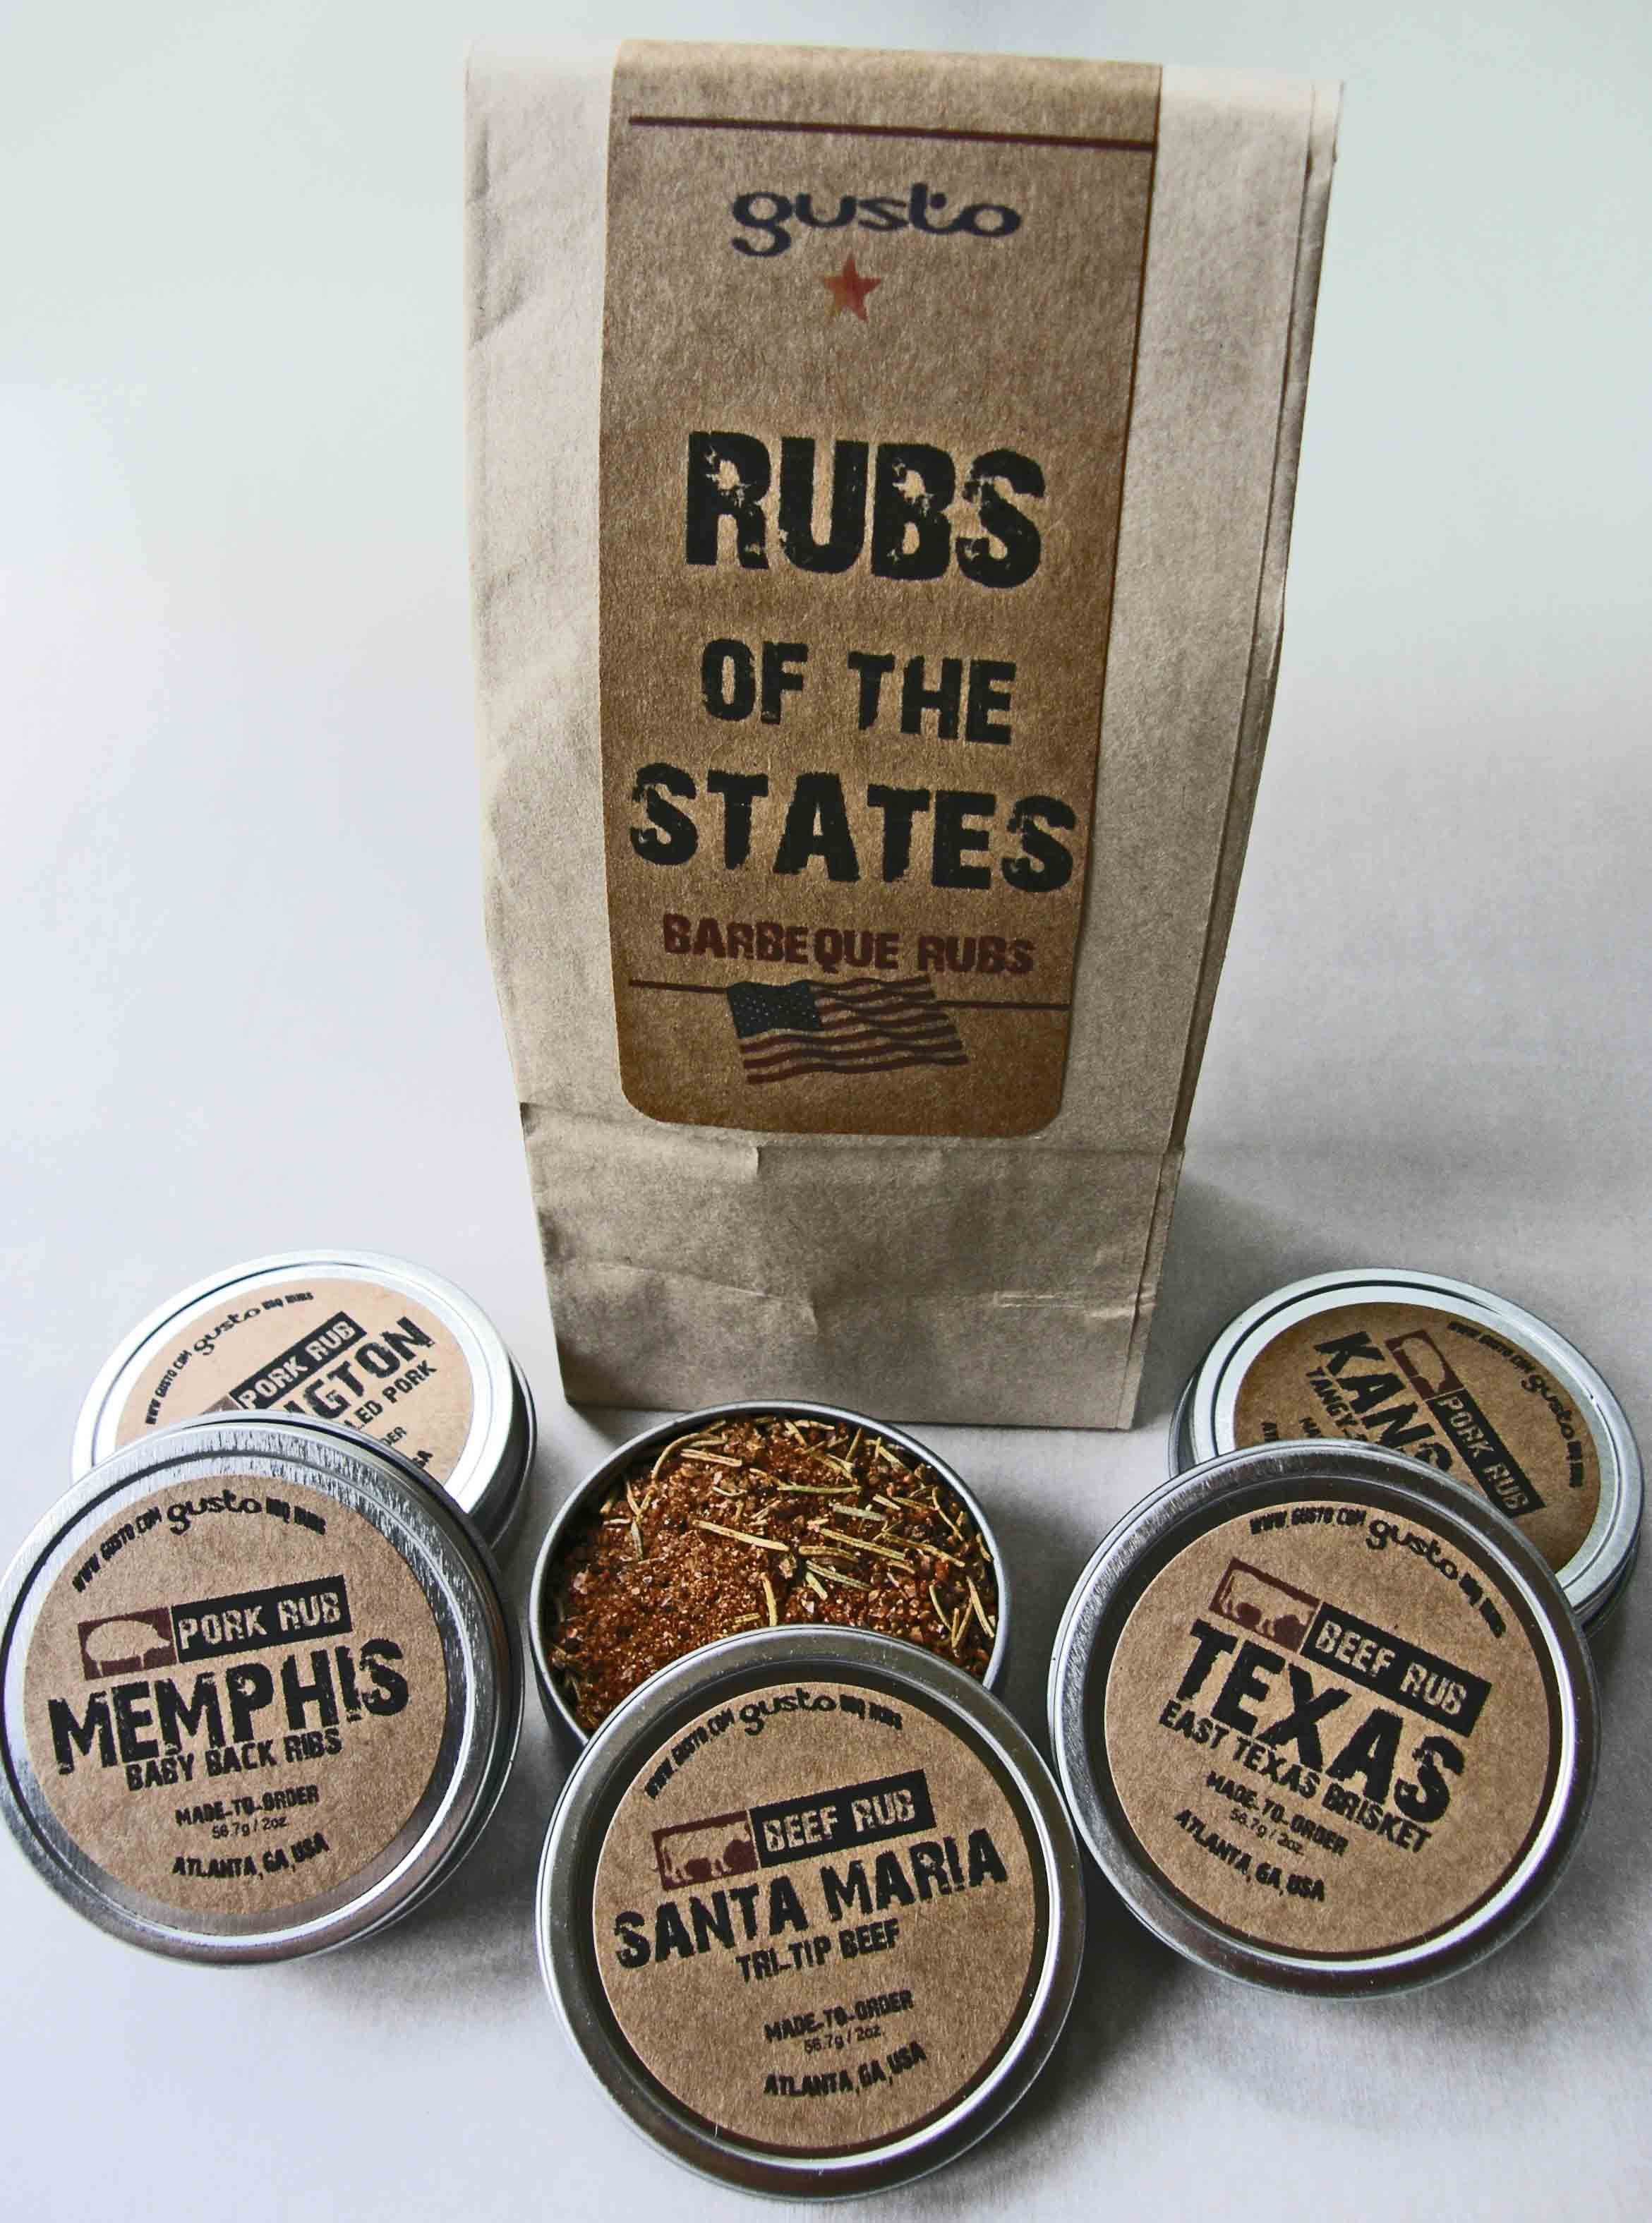 Gustos barbecue rubs gift set featuring rubs from texas